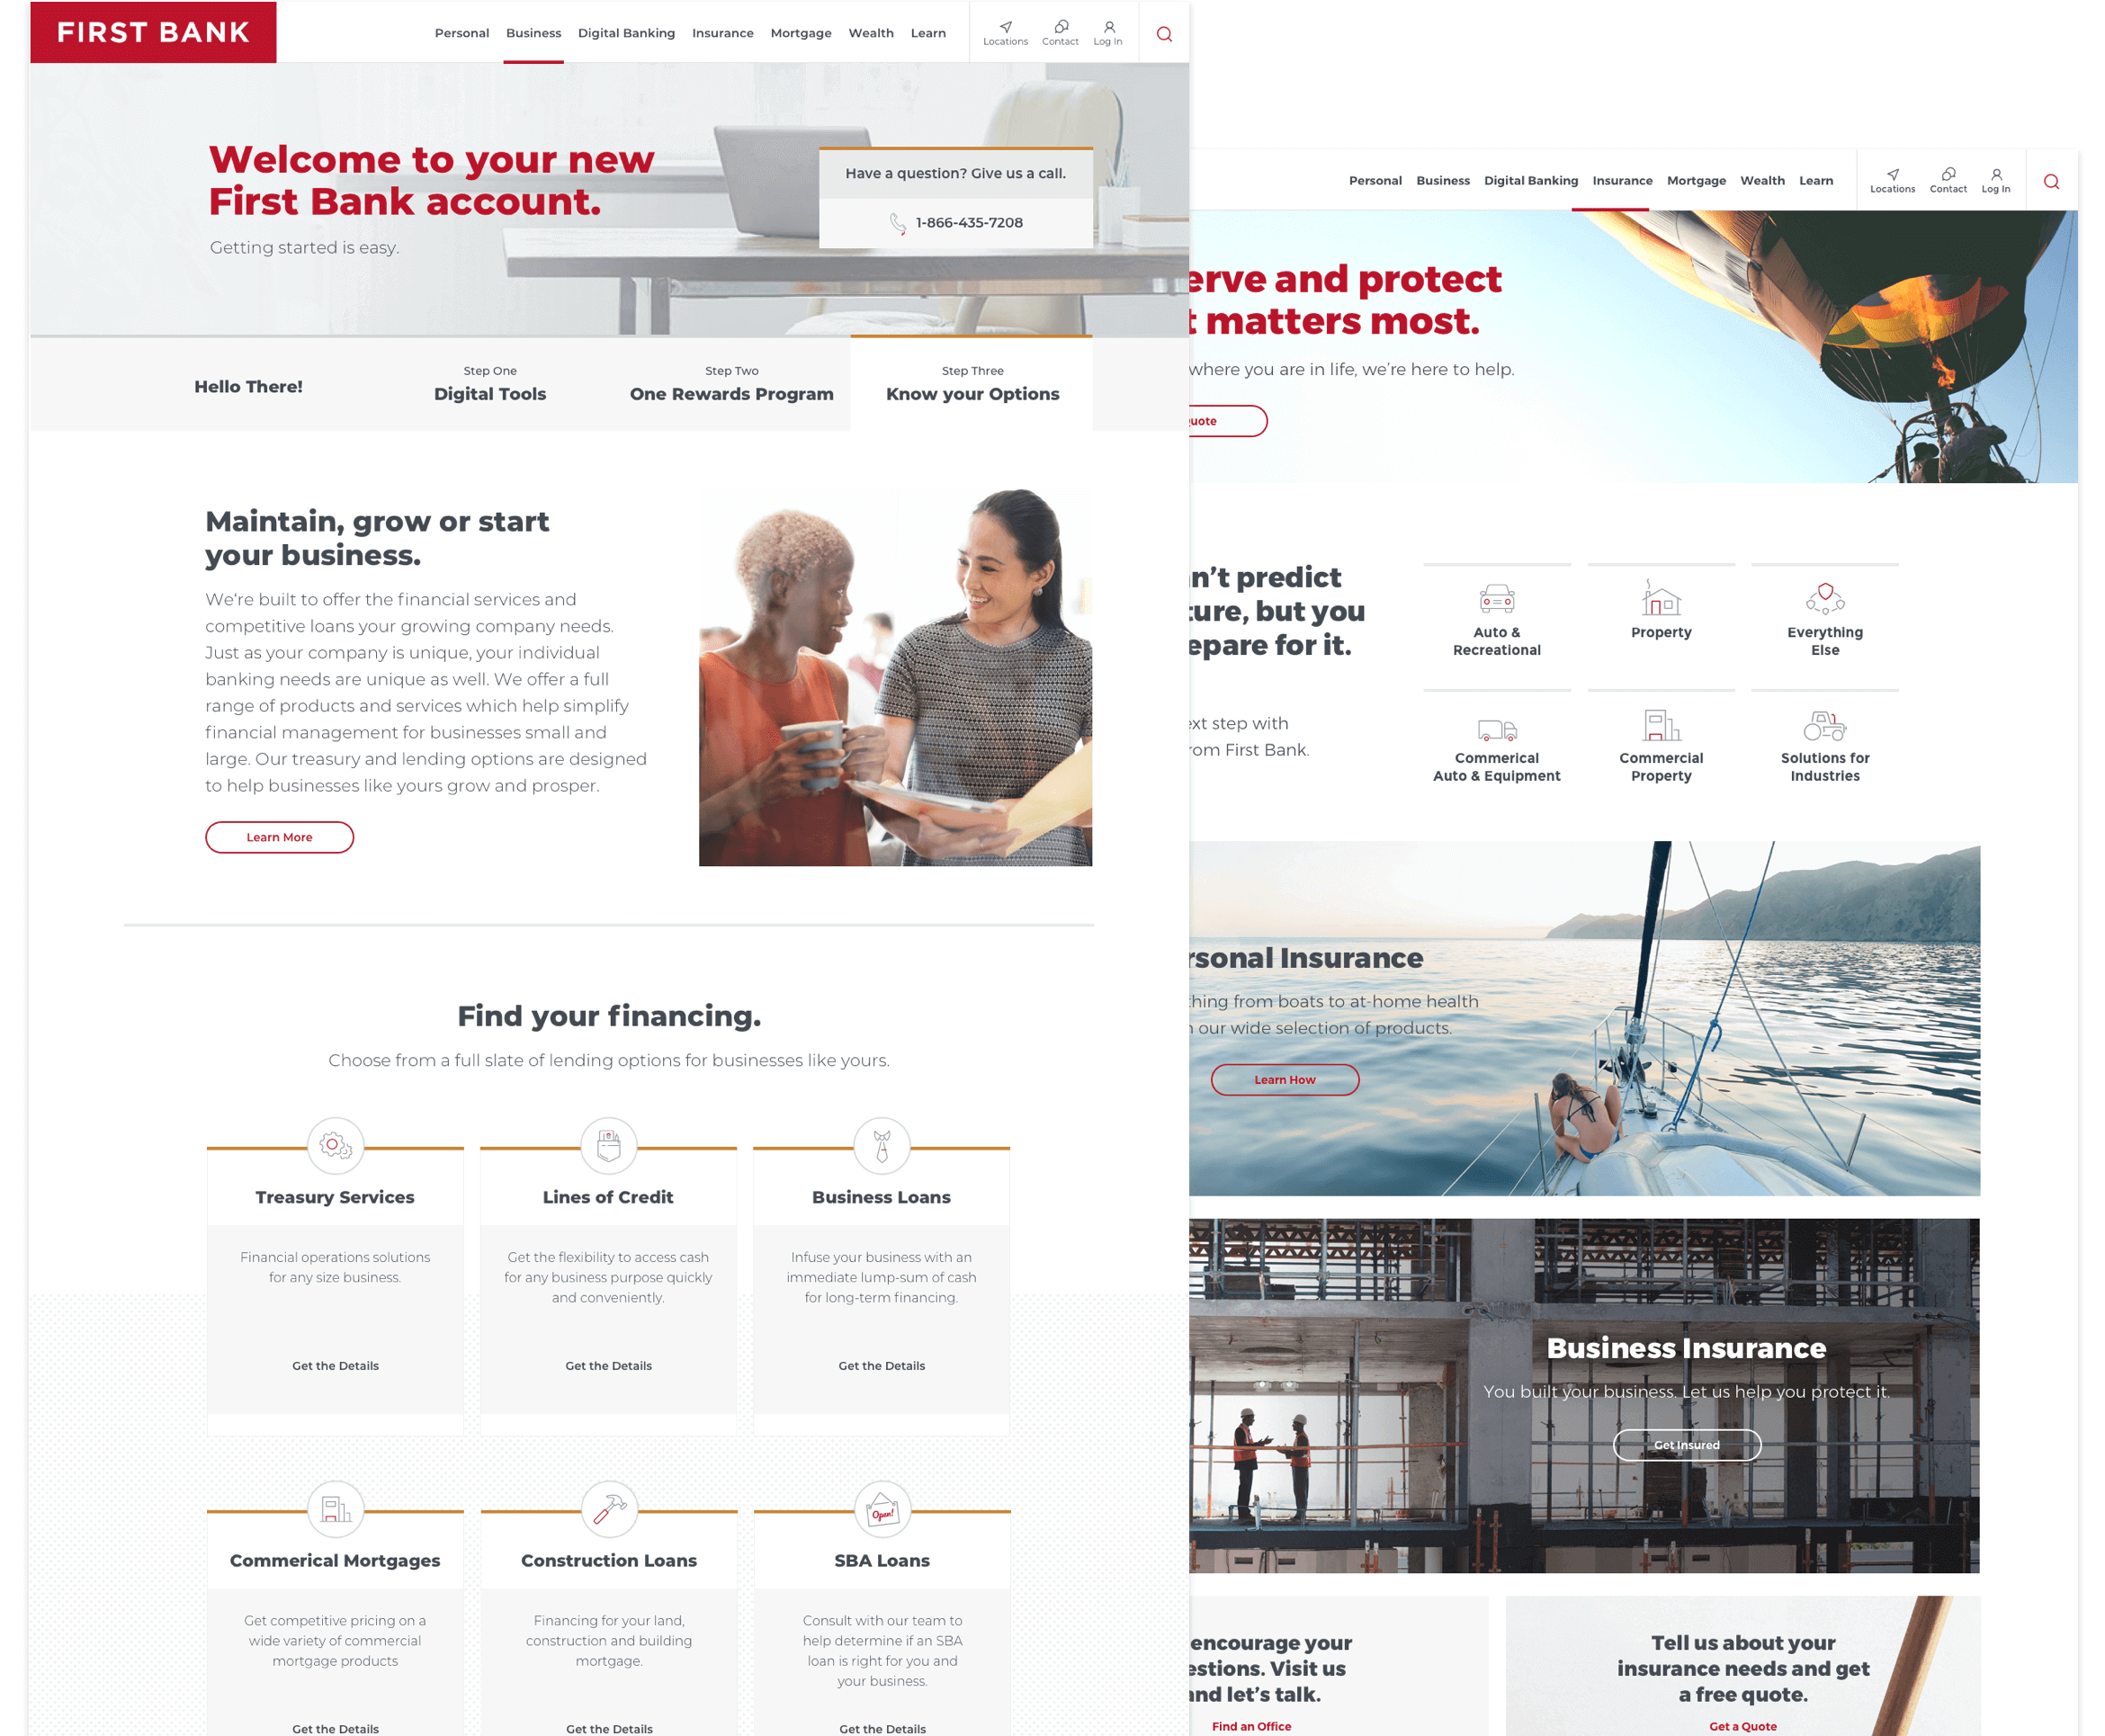 First Bank Business and Insurance pages